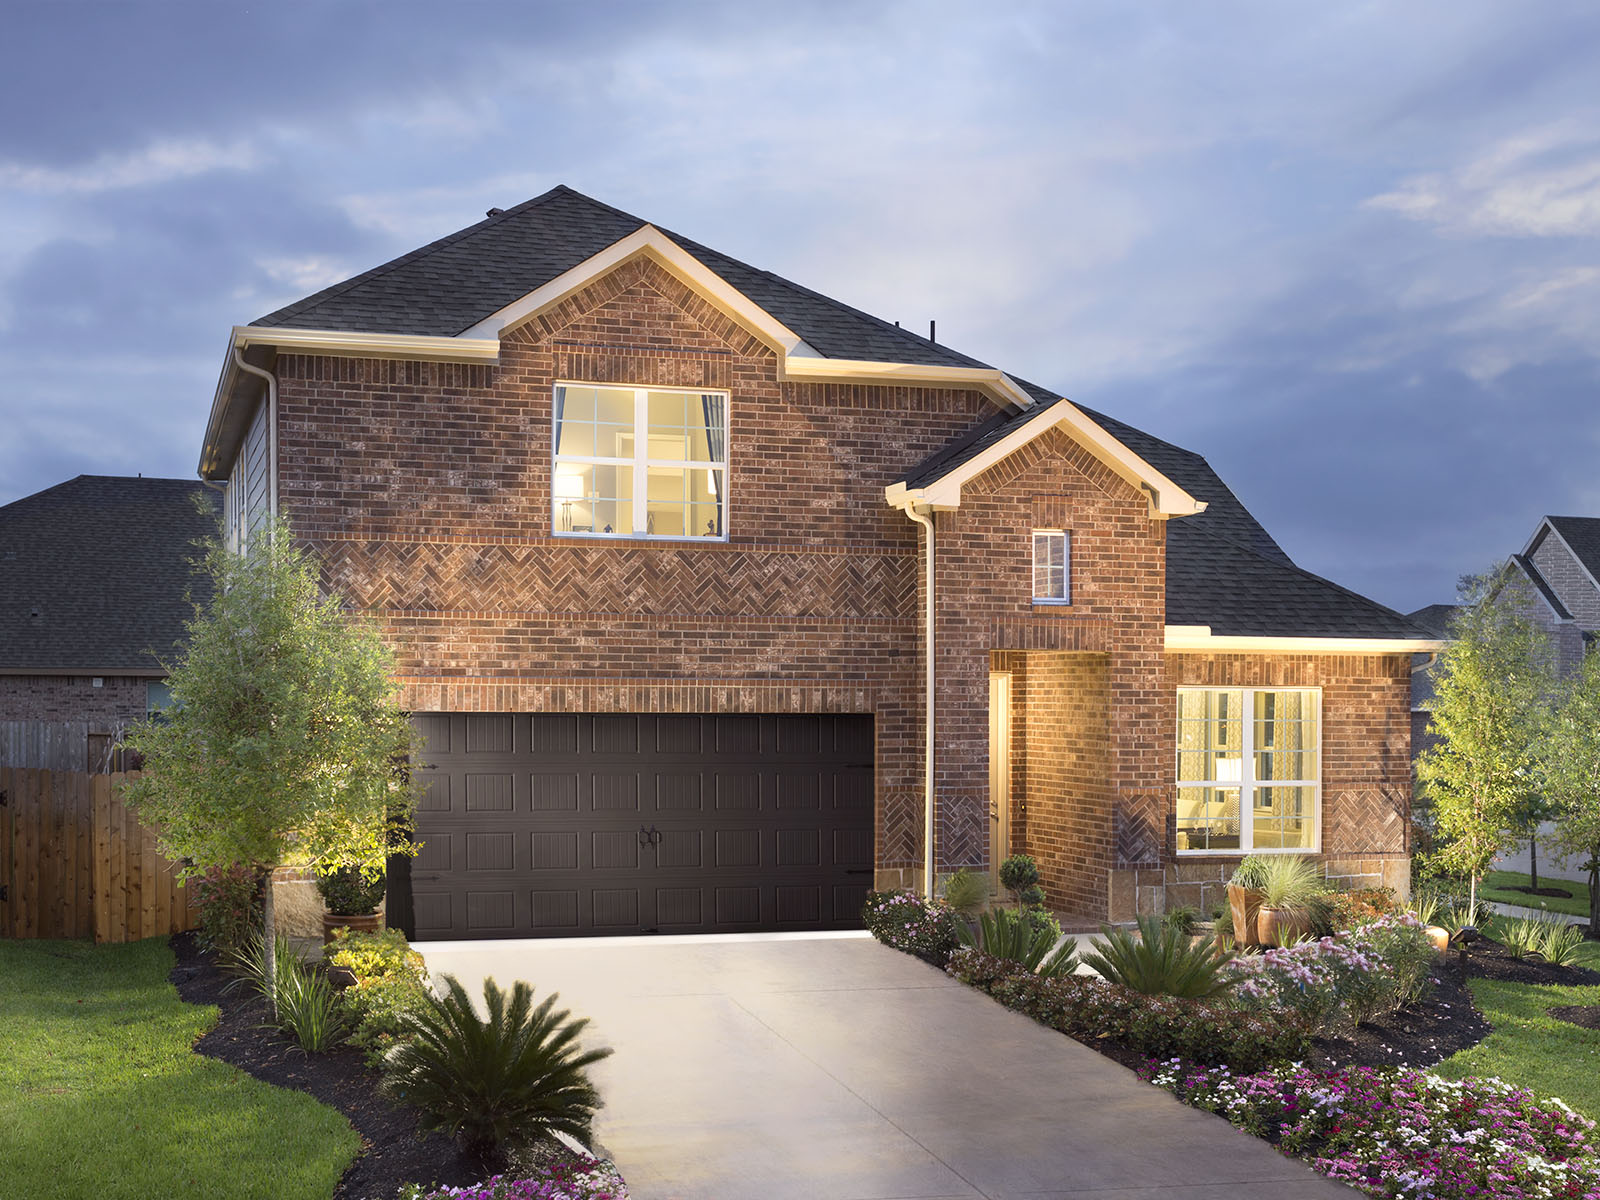 This Can Be A New Picture Of Patio Homes for Sale Katy Tx